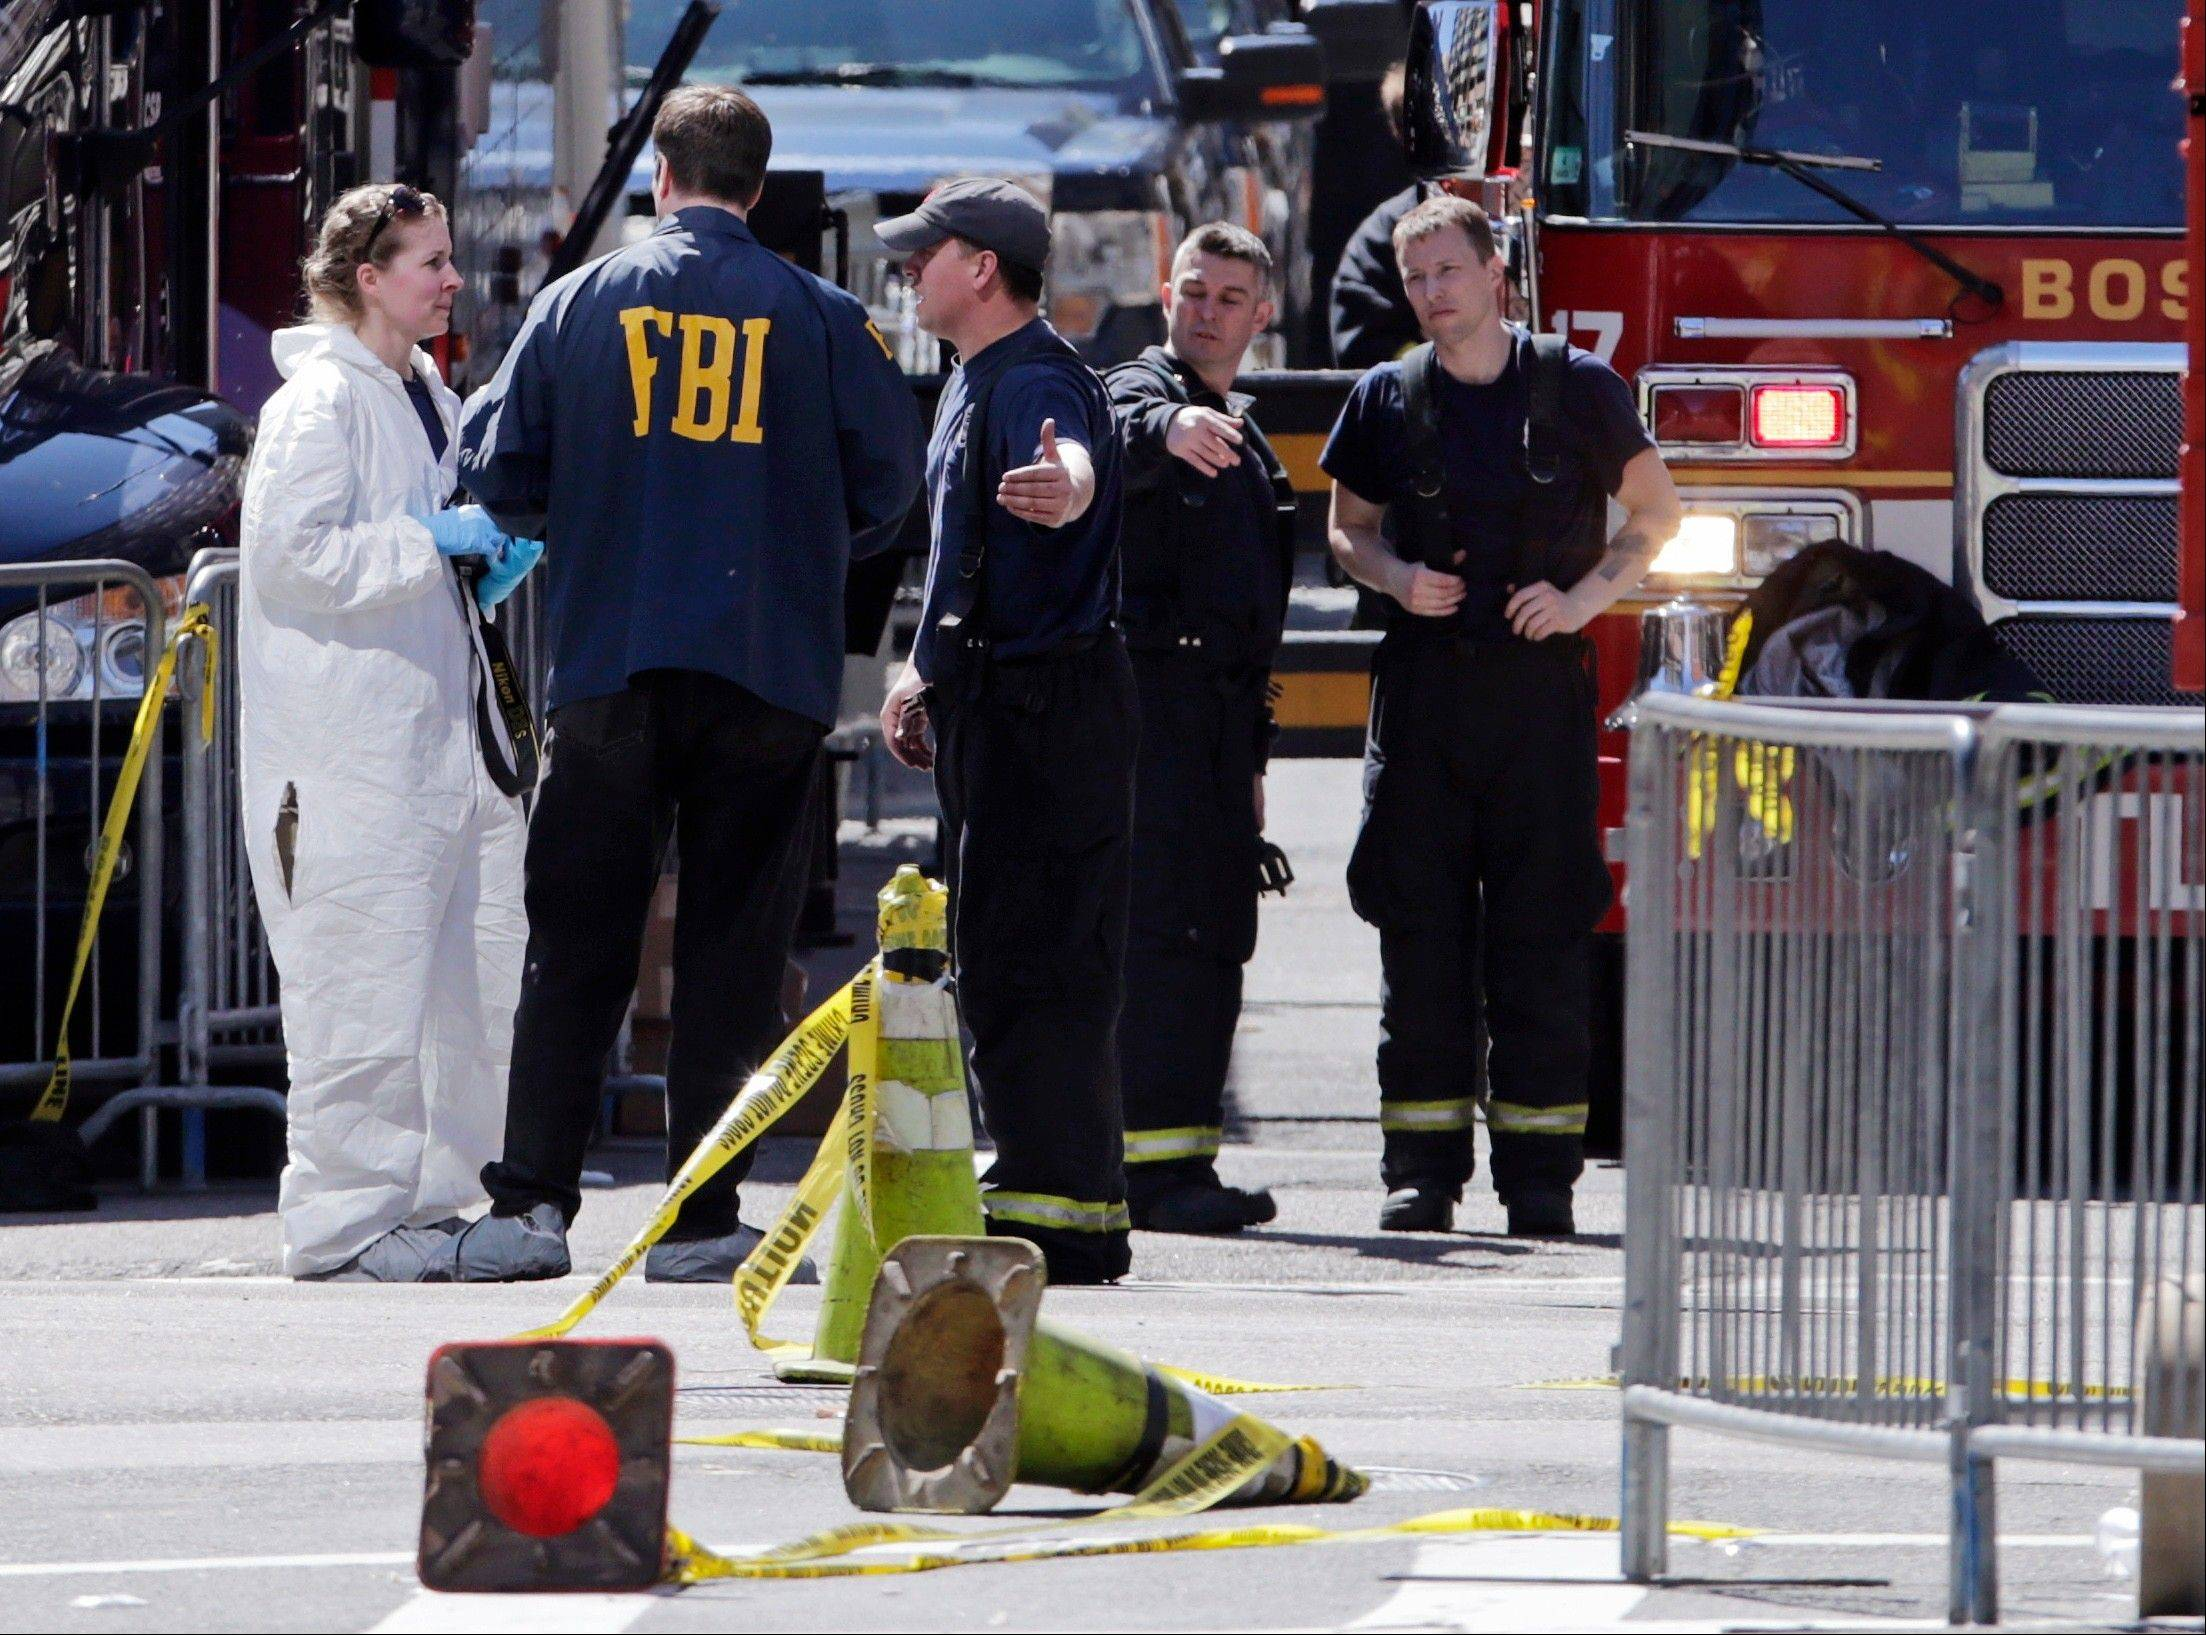 Boston firefighters, right, talk Tuesday with FBI agents and a crime scene photographer at the scene of Monday's Boston Marathon explosions, which killed at least three and injured more than 140, in Boston. The bombs that blew up seconds apart near the finish line left the streets spattered with blood and glass, and gaping questions of who chose to attack at the Boston Marathon and why.